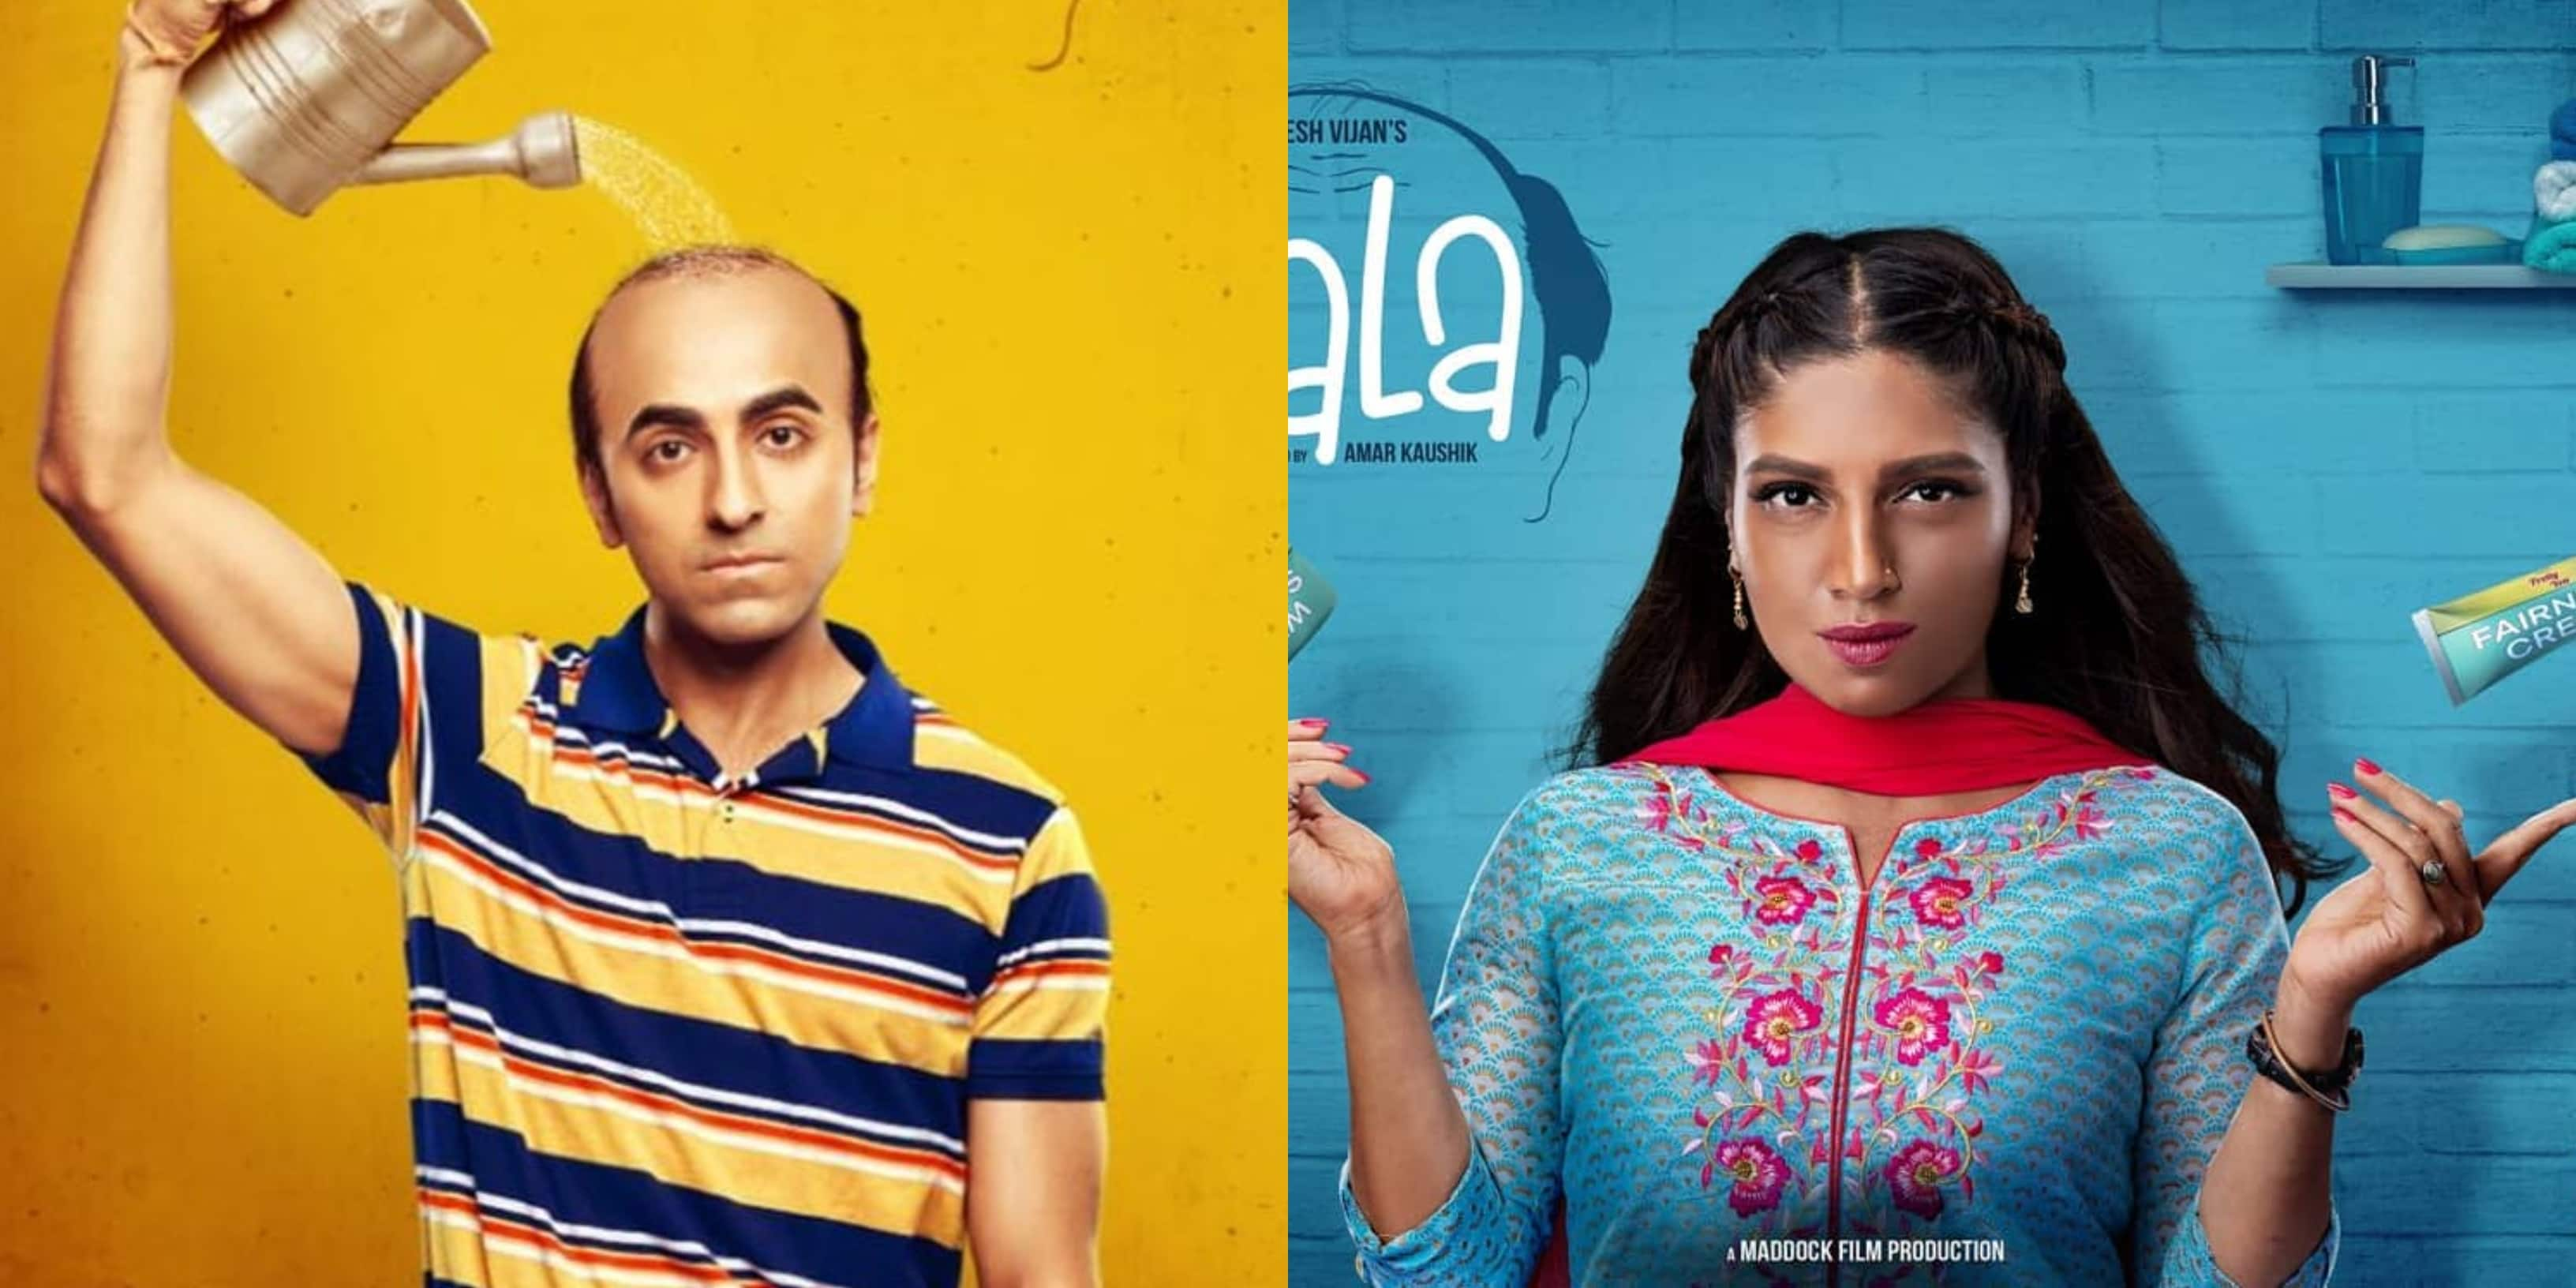 Bala Director Amar Kaushik Asks Why Asyumann Going Bald Is Not As Problematic As Bhumi's Skin Darkening? Questions Audiences' Double Standards